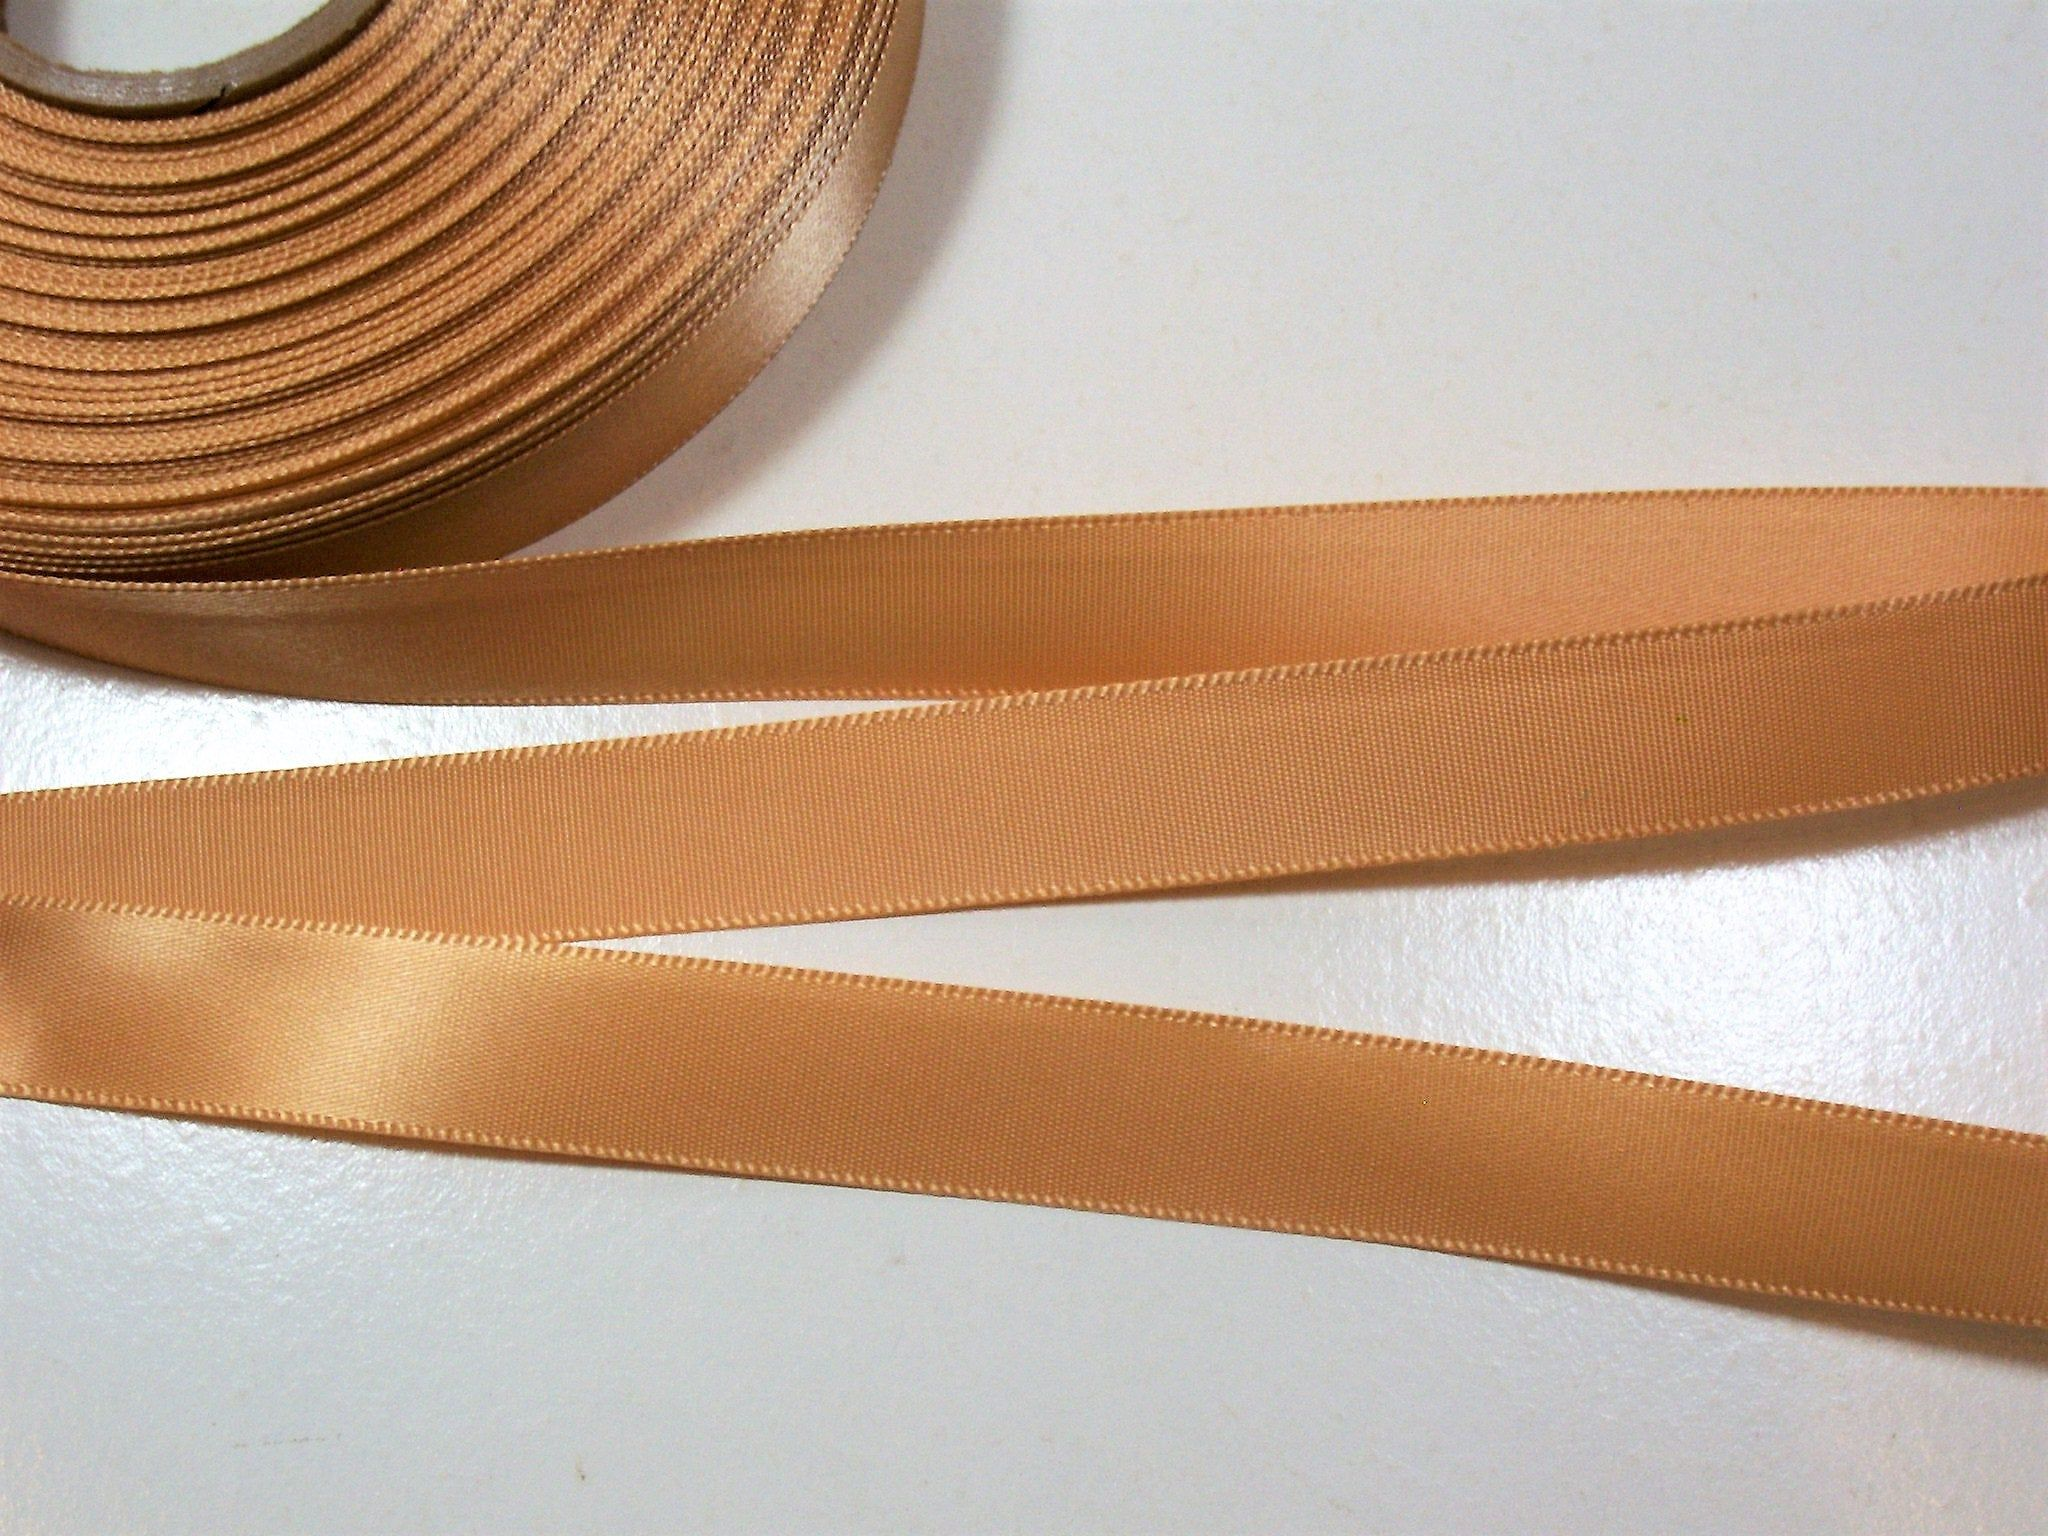 Light Brown Ribbon Offray Russet Satin Ribbon 5 8 Wide Etsy Brown Russet Light Brown